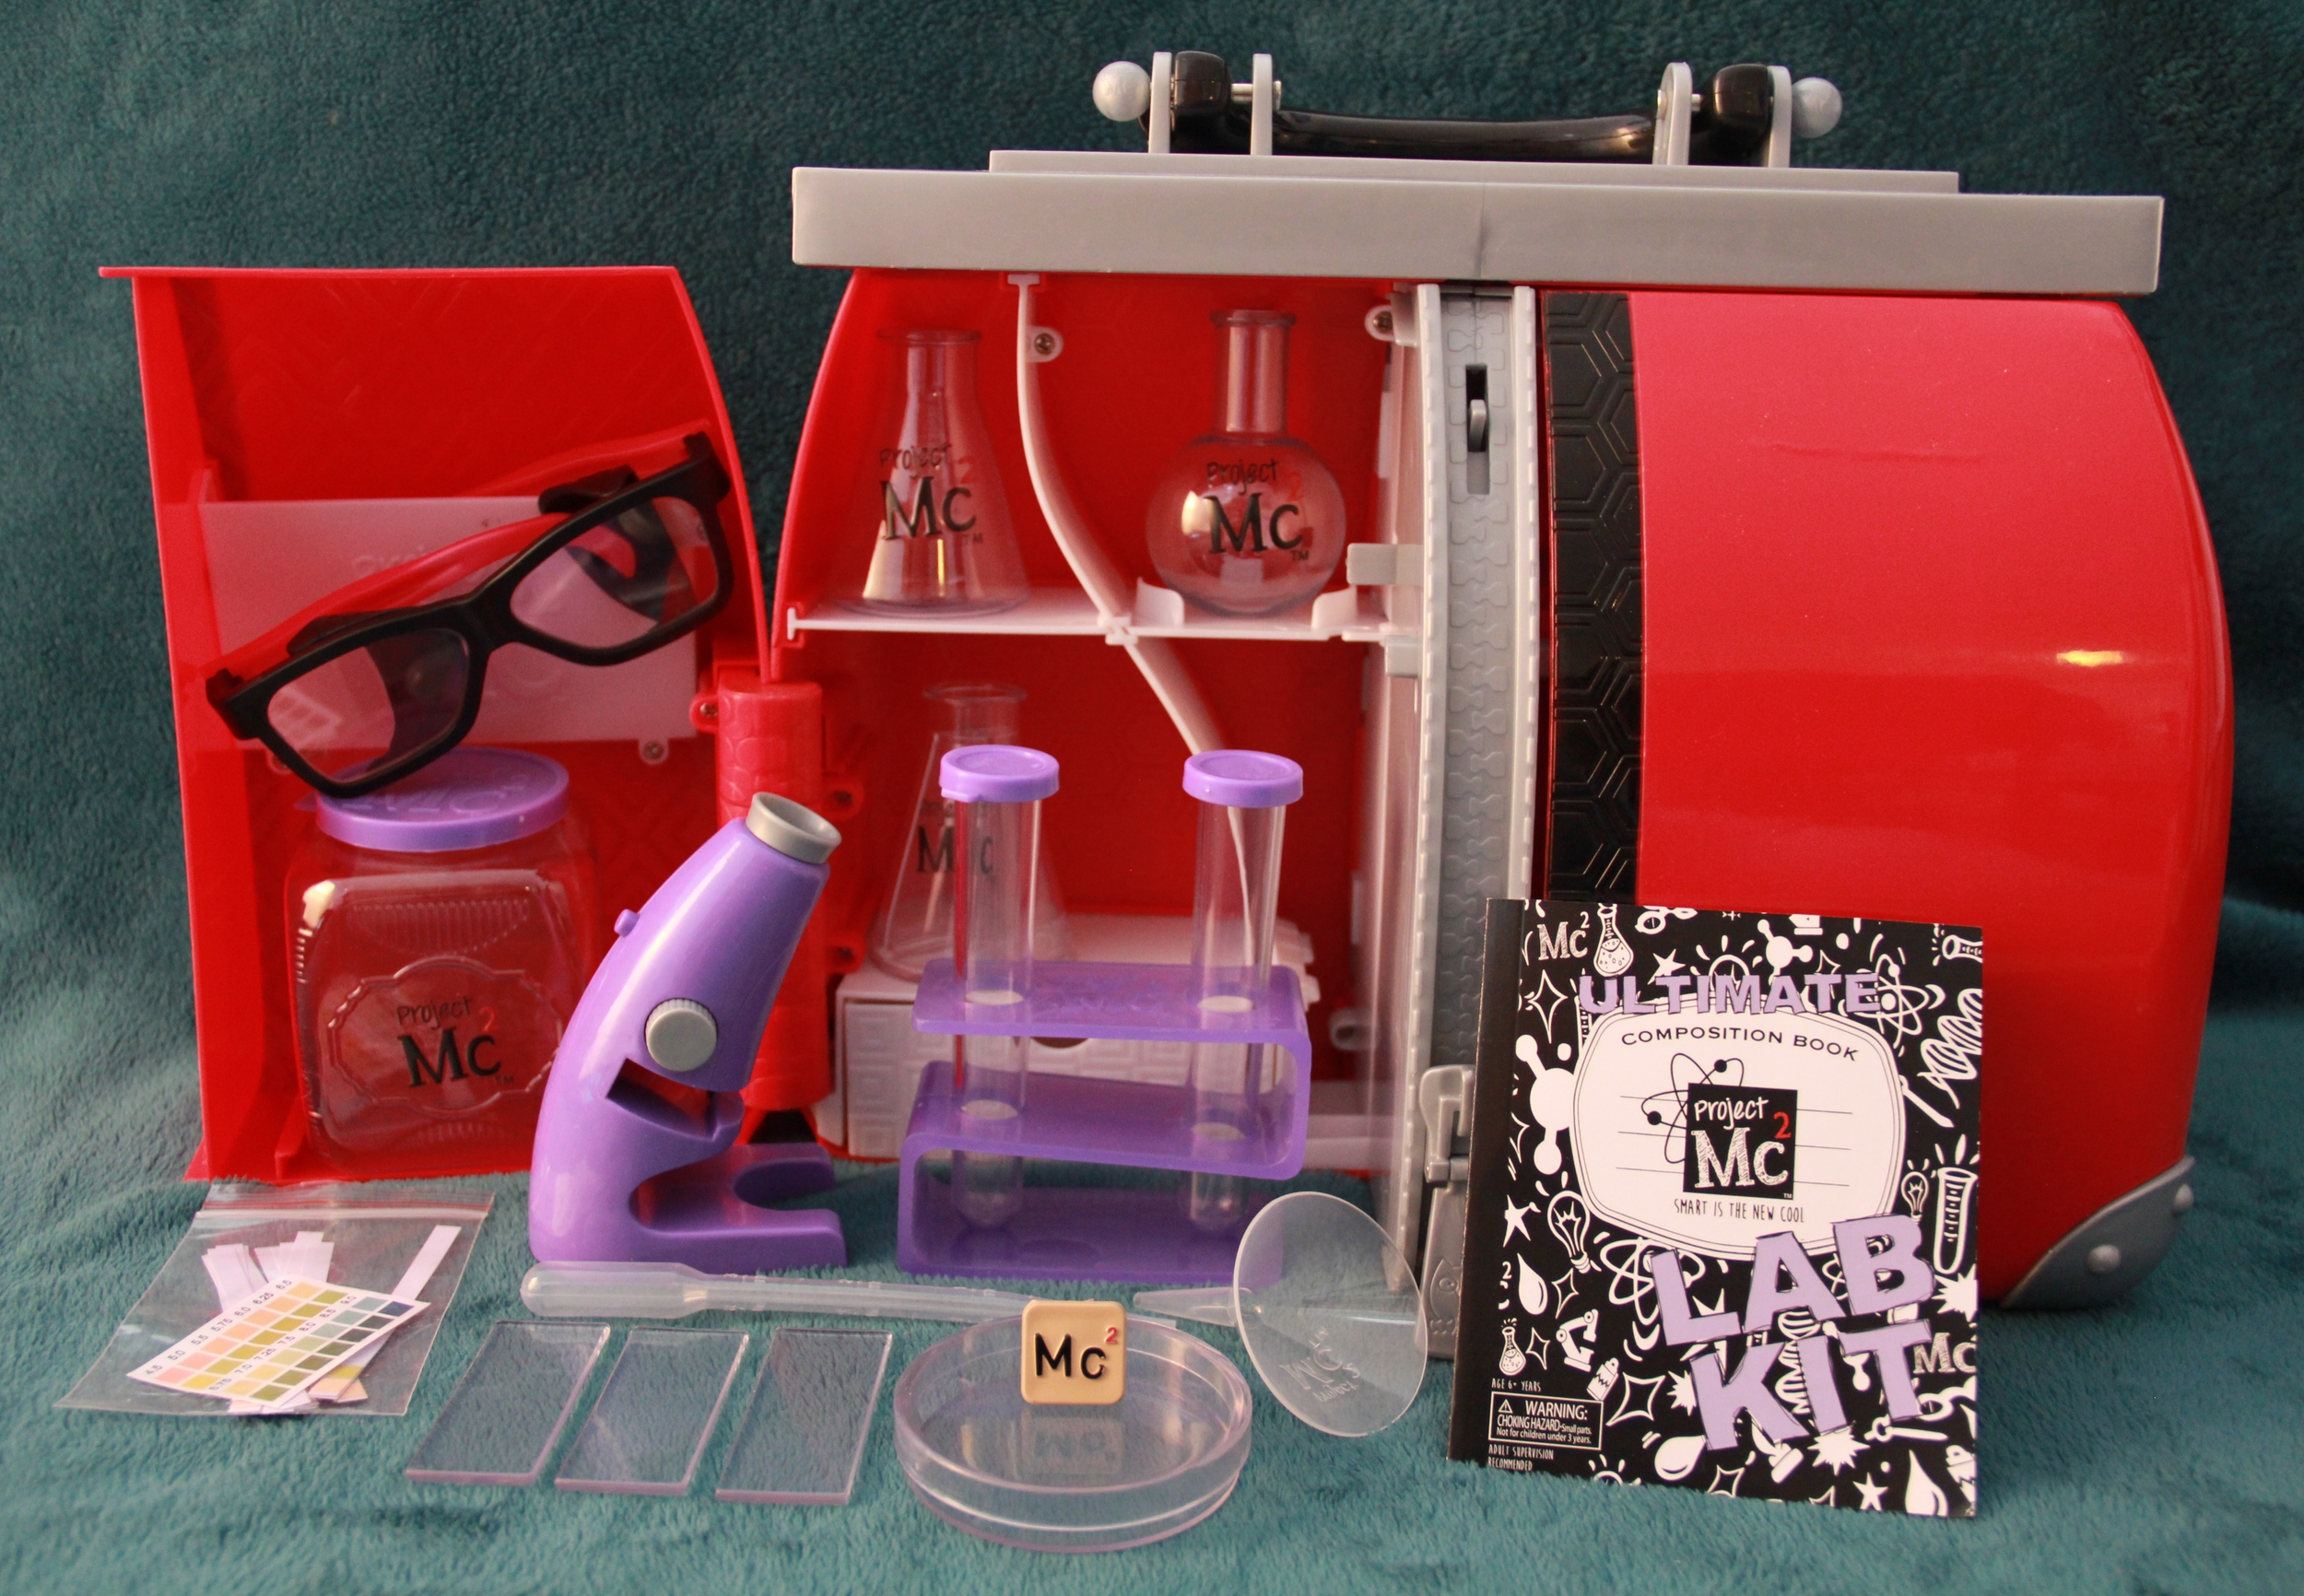 The MC2 Ultimate Lab Kit.